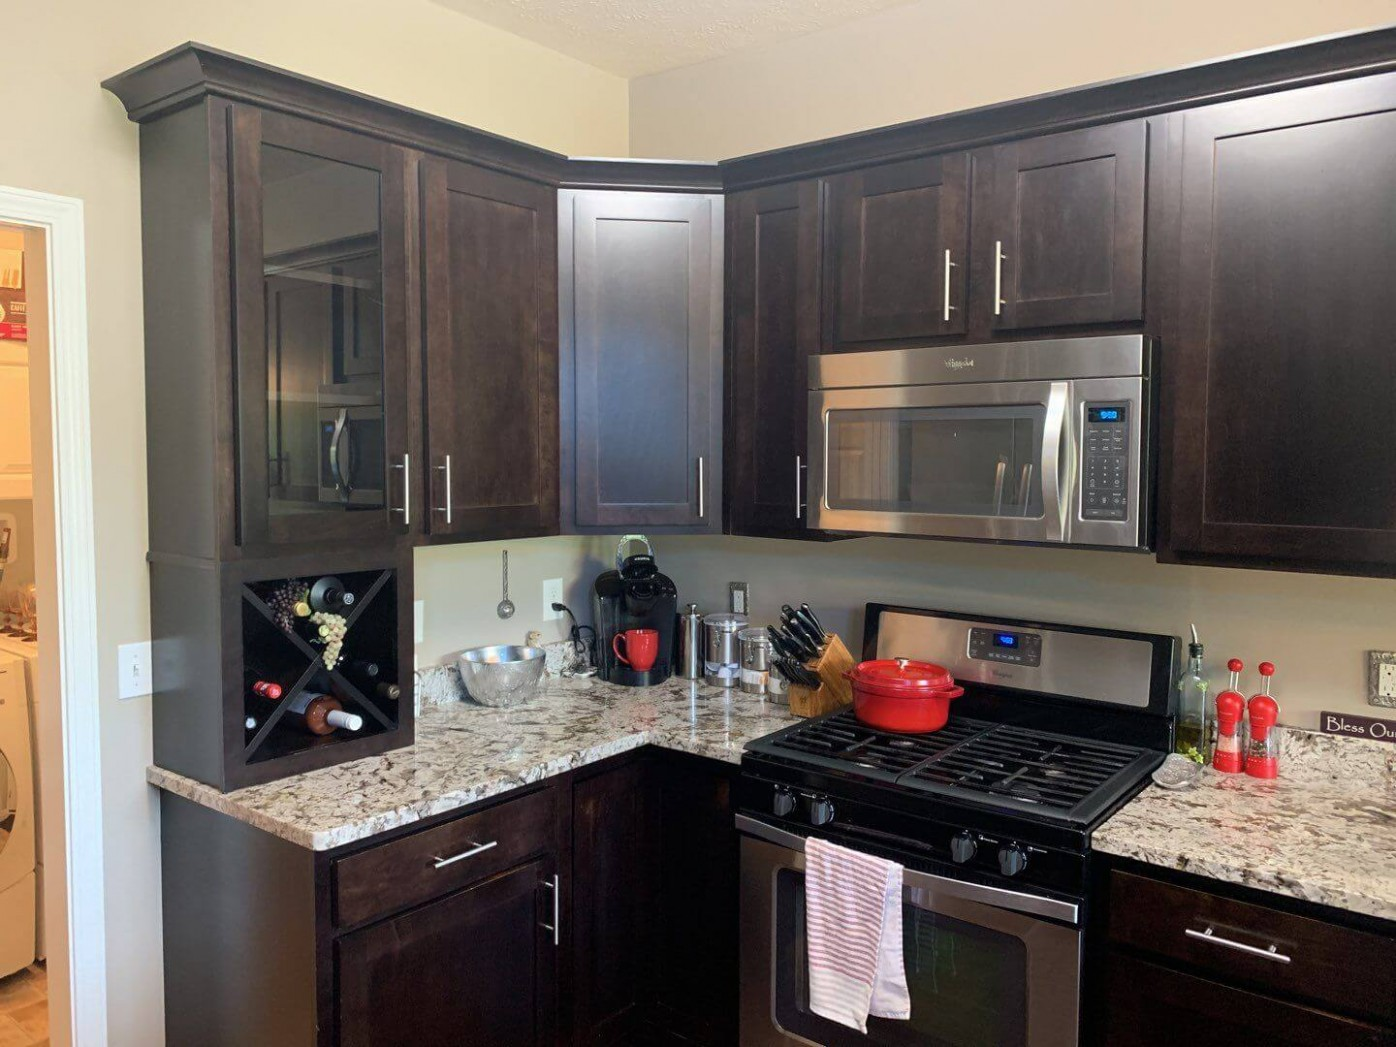 What Color Should I Paint My Kitchen Cabinets?  Textbook Painting - Brown Colored Kitchen Cabinets